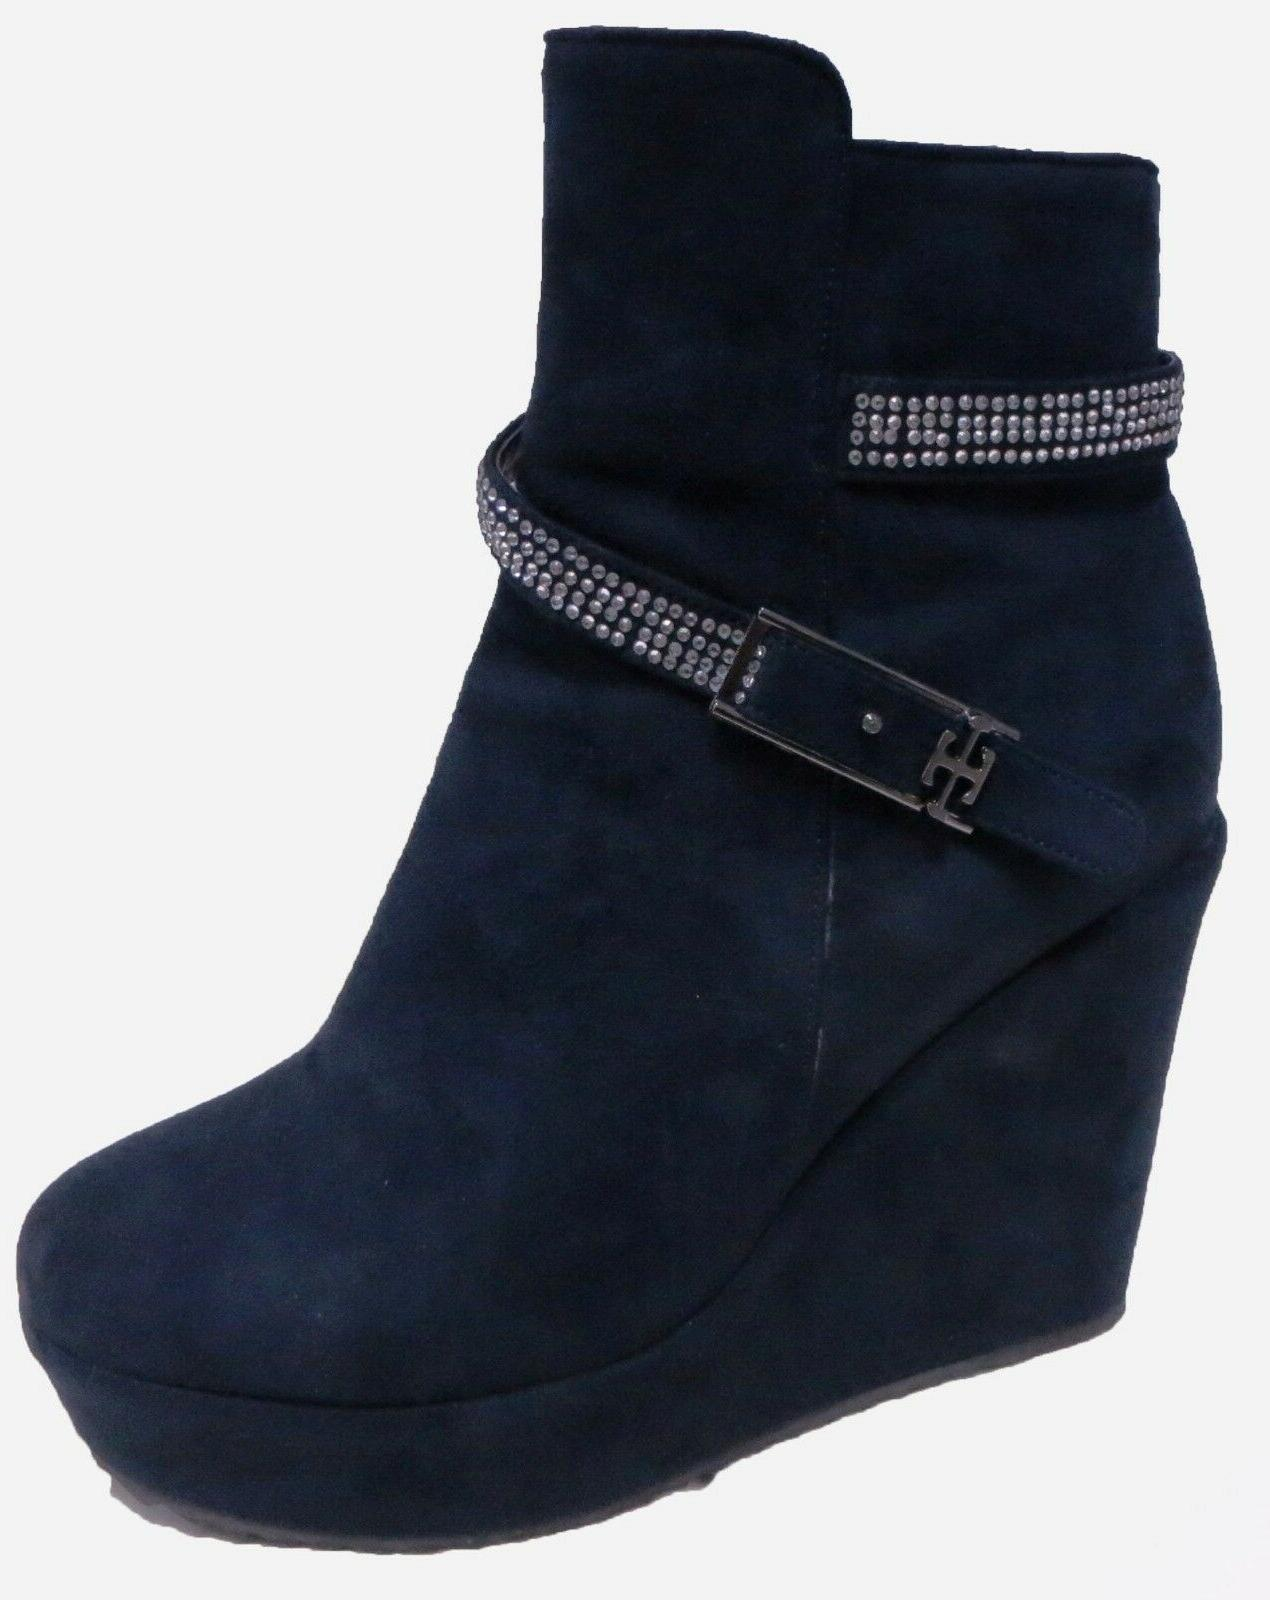 New Boots Fashion Fur Lined Shoes,